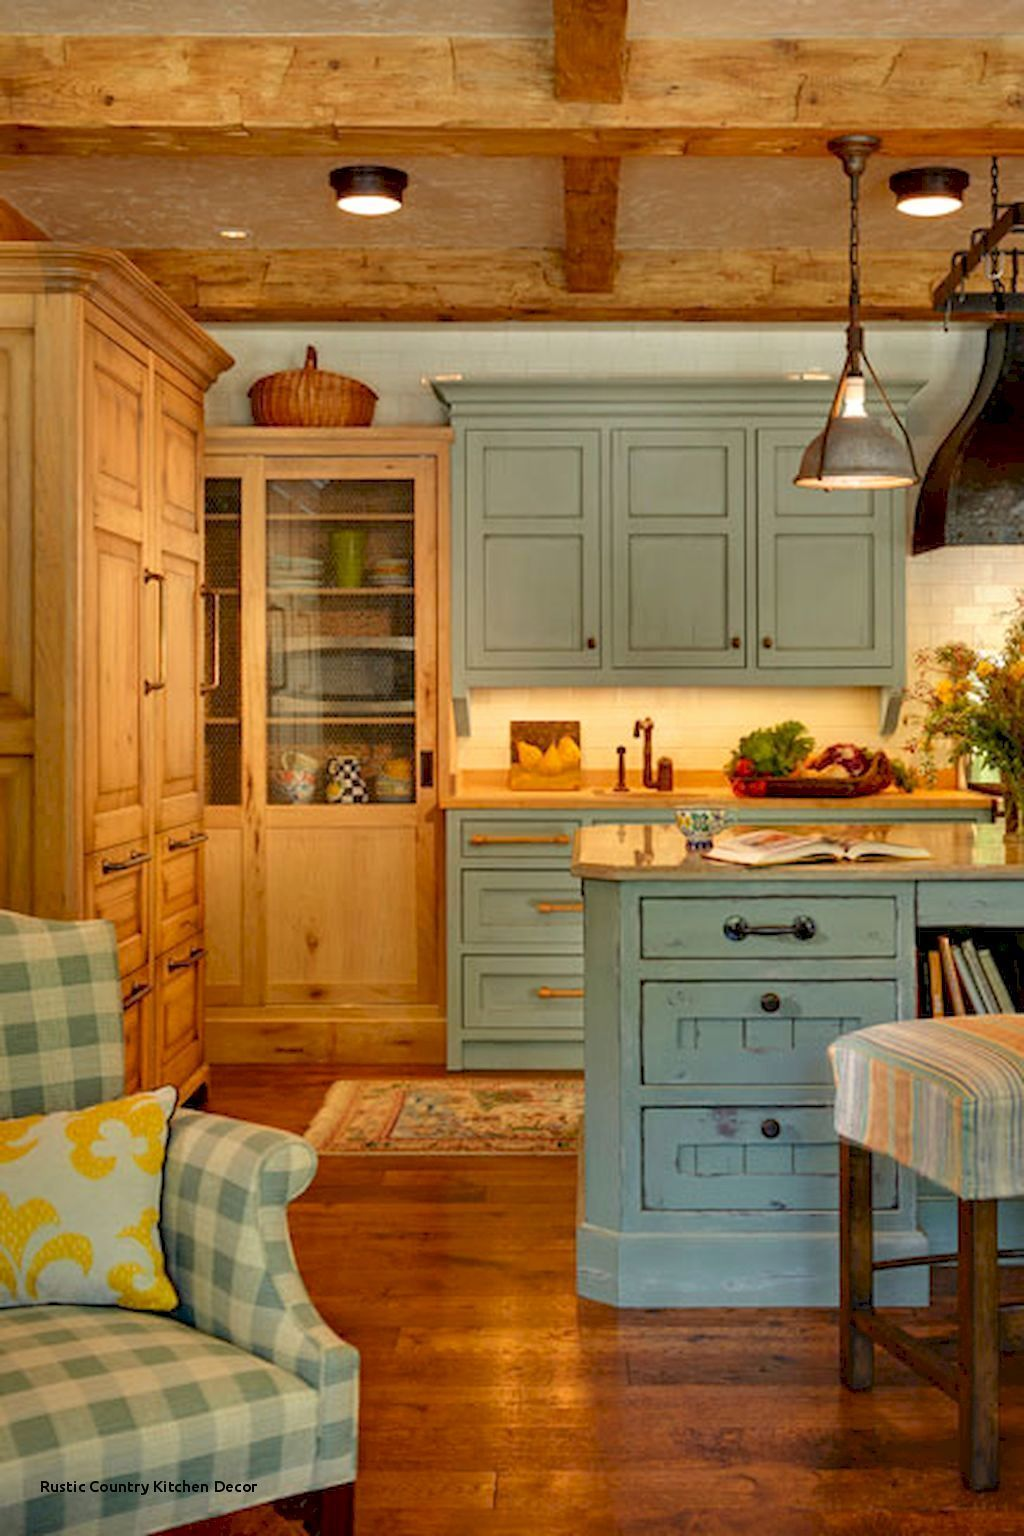 10 rustic farmhouse kitchen ideas for 2019 rustic kitchen cabinets cottage kitchens on kitchen cabinets farmhouse style id=58842